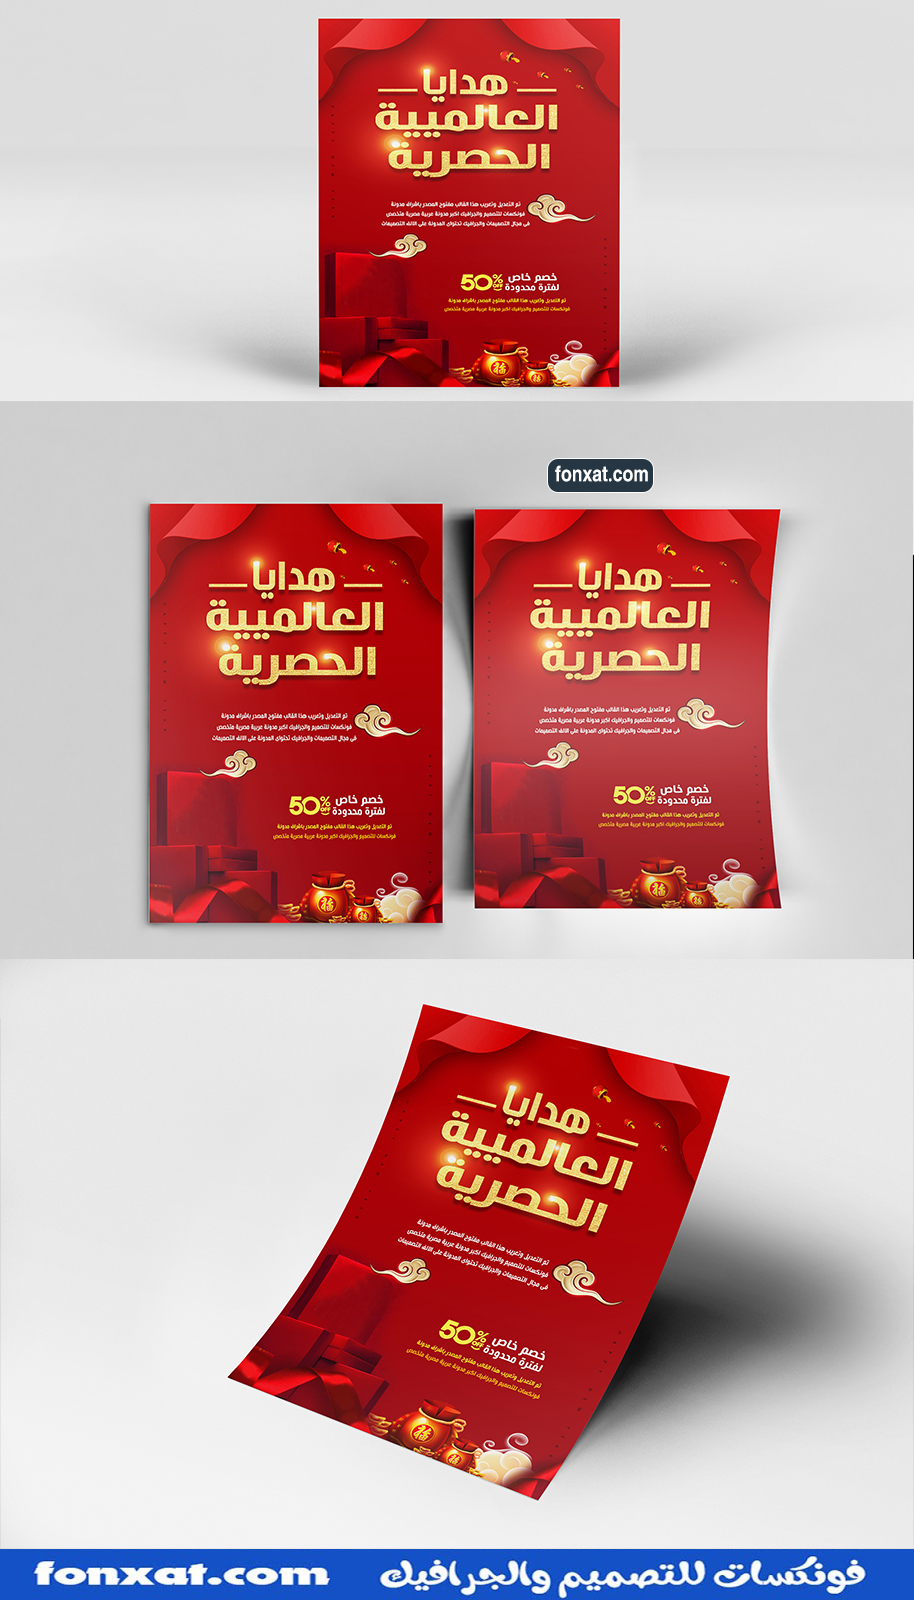 Photoshop PSD design for gift shops and gift stores